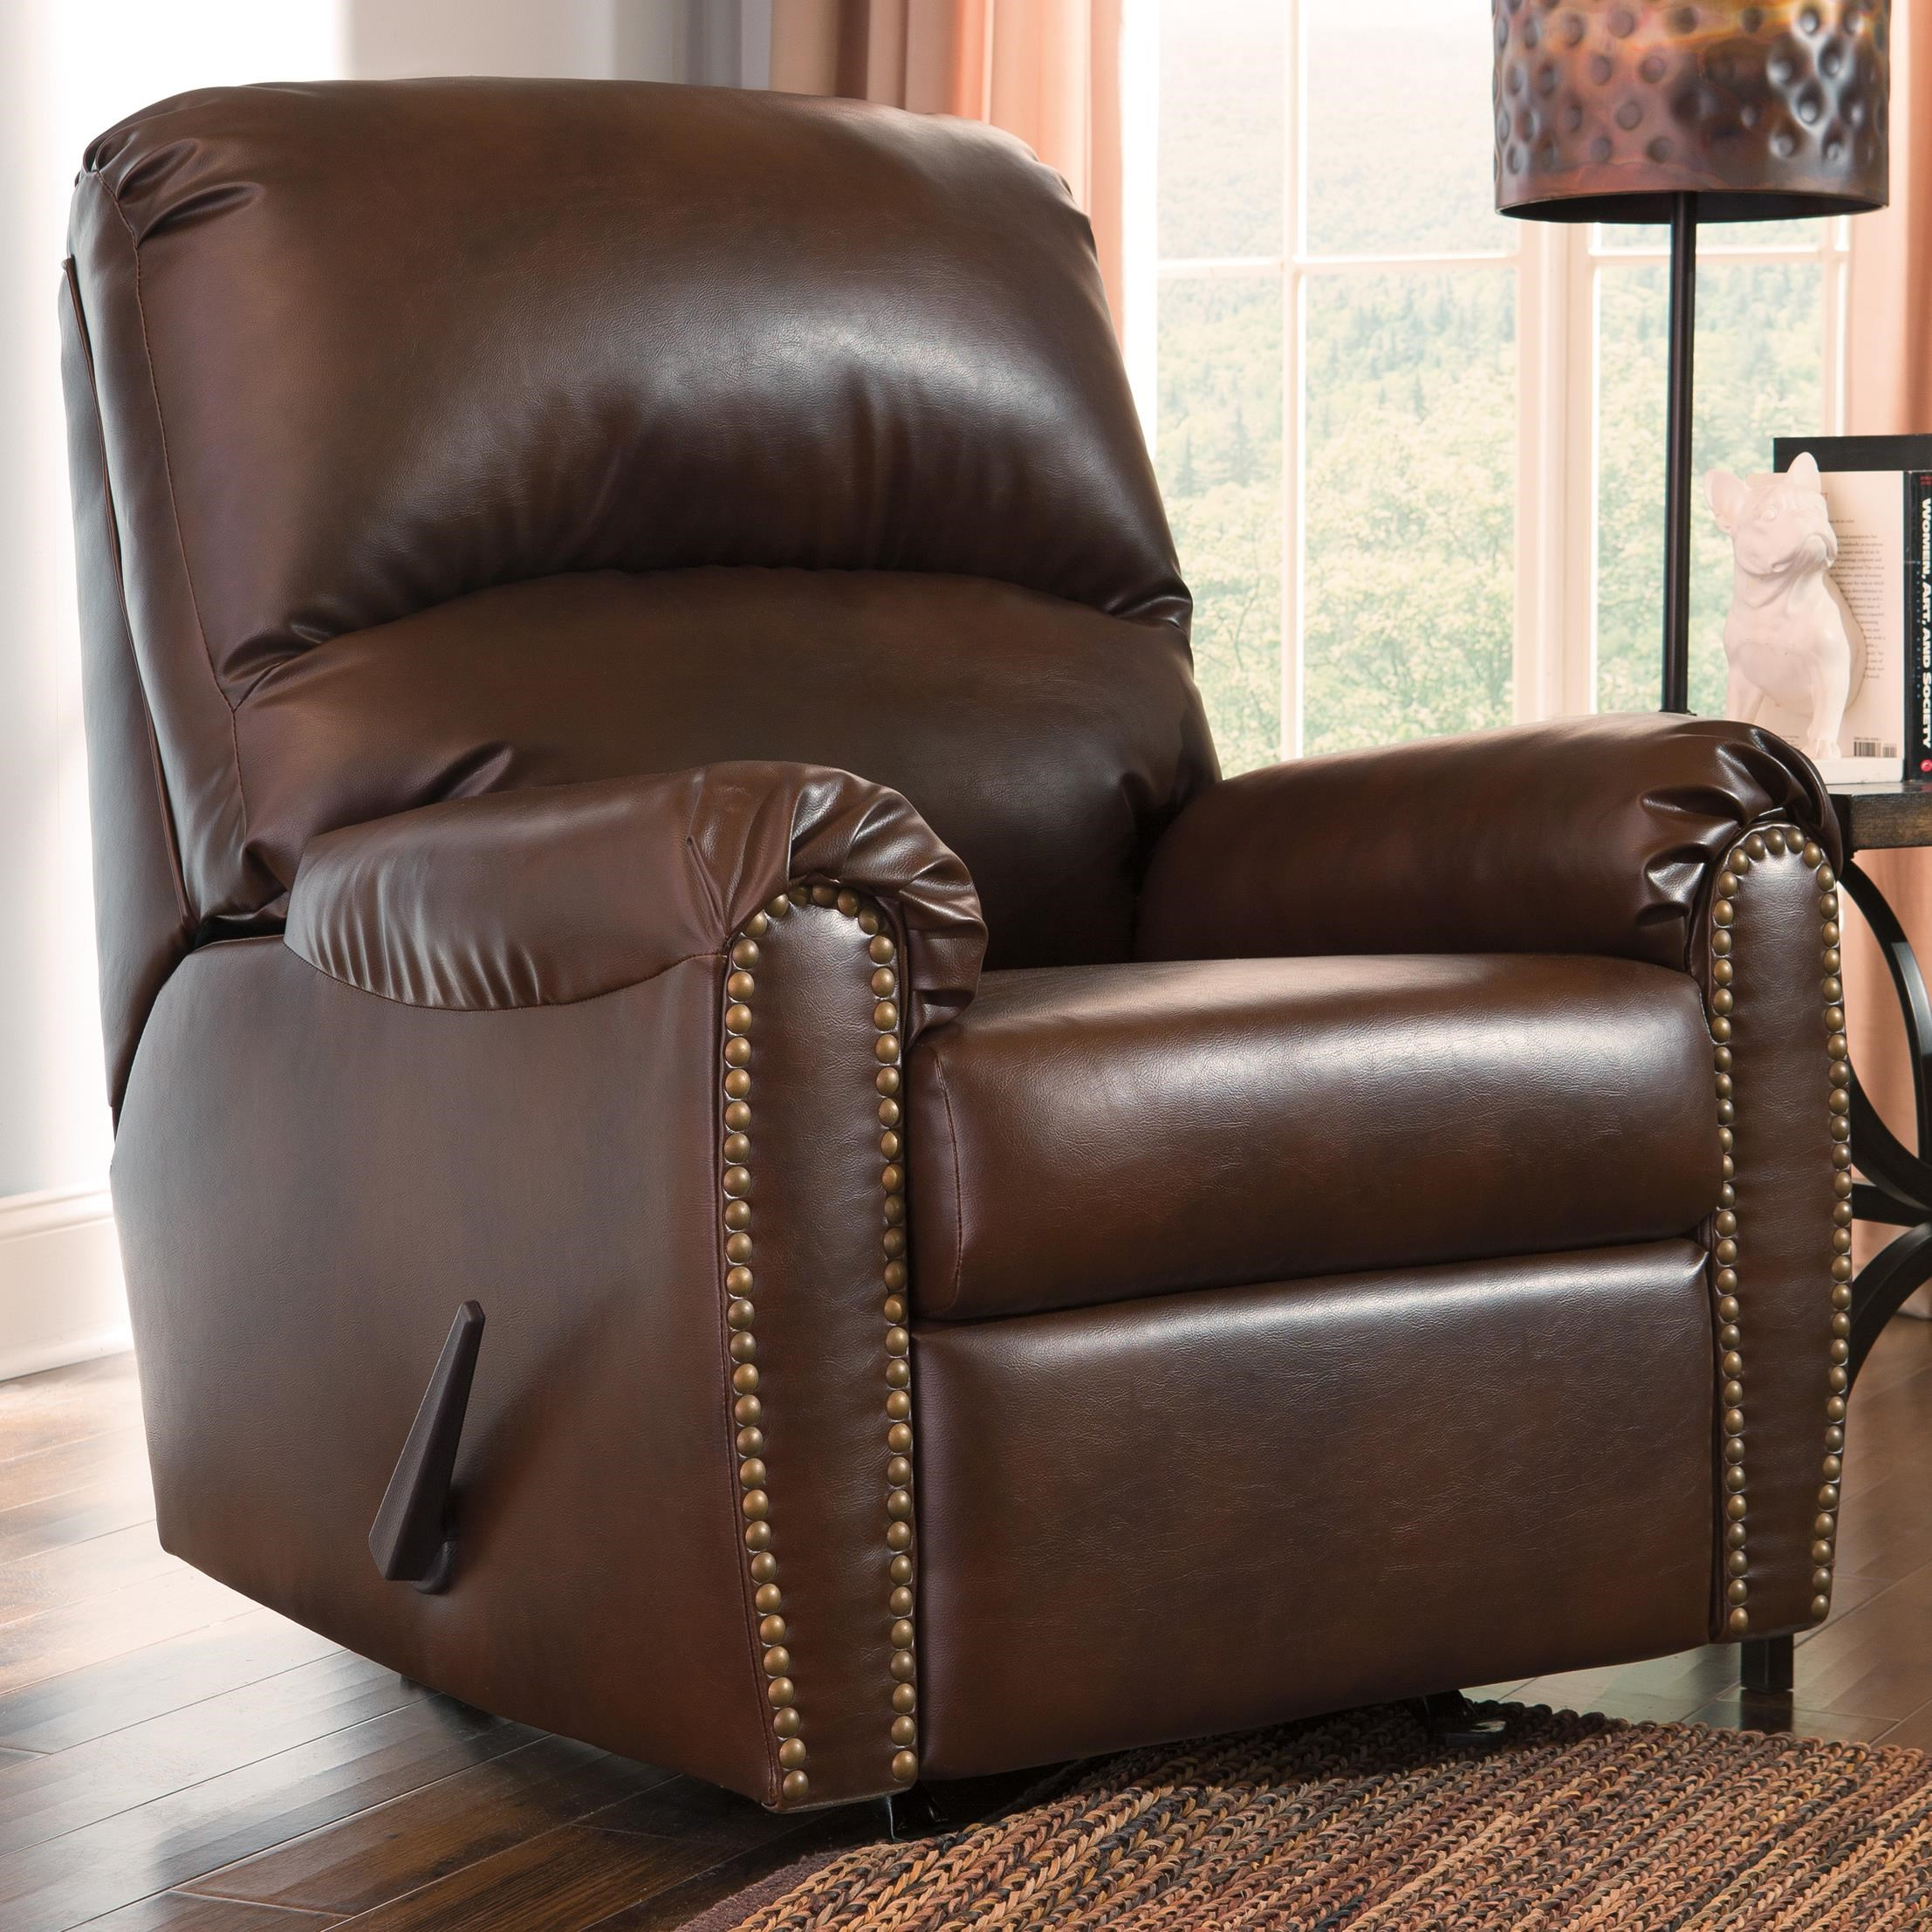 Signature Design by Ashley Lottie DuraBlend® Transitional Bonded Leather Match Rocker Recliner with Nailhead Trim & Signature Design by Ashley Lottie DuraBlend® Transitional Bonded ... islam-shia.org